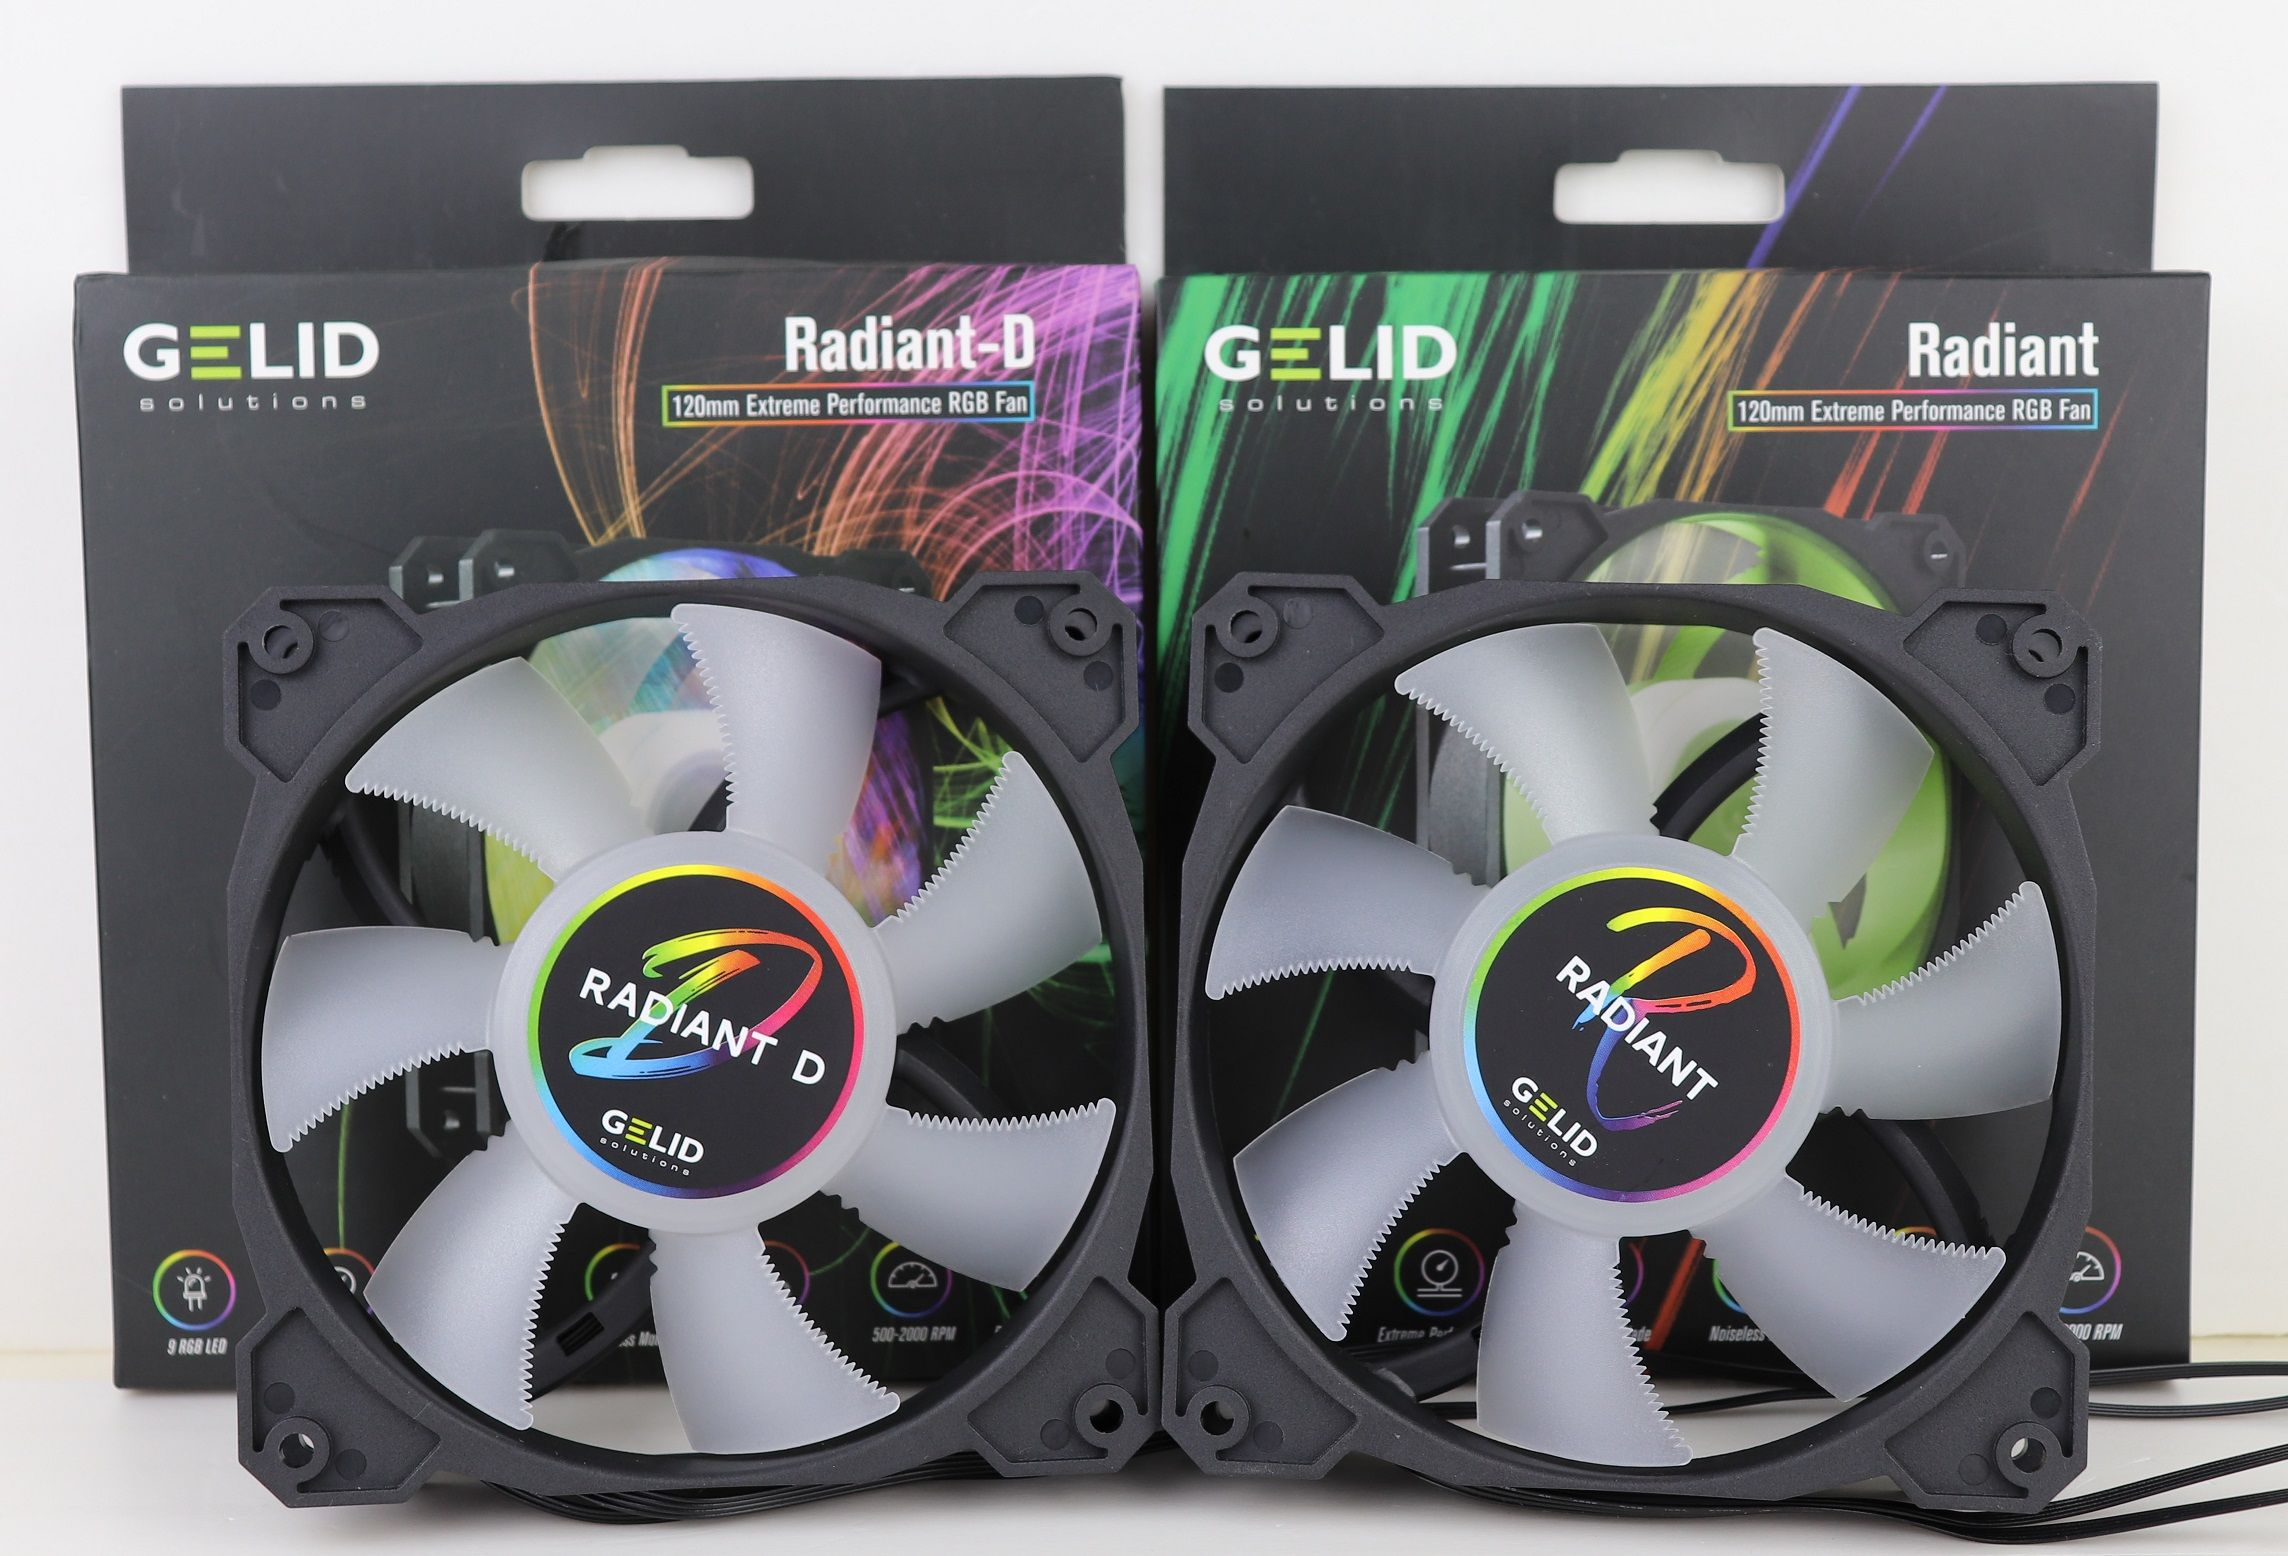 The Radiant Radiant D Rgb Fans From Gelid Performed Well In Our